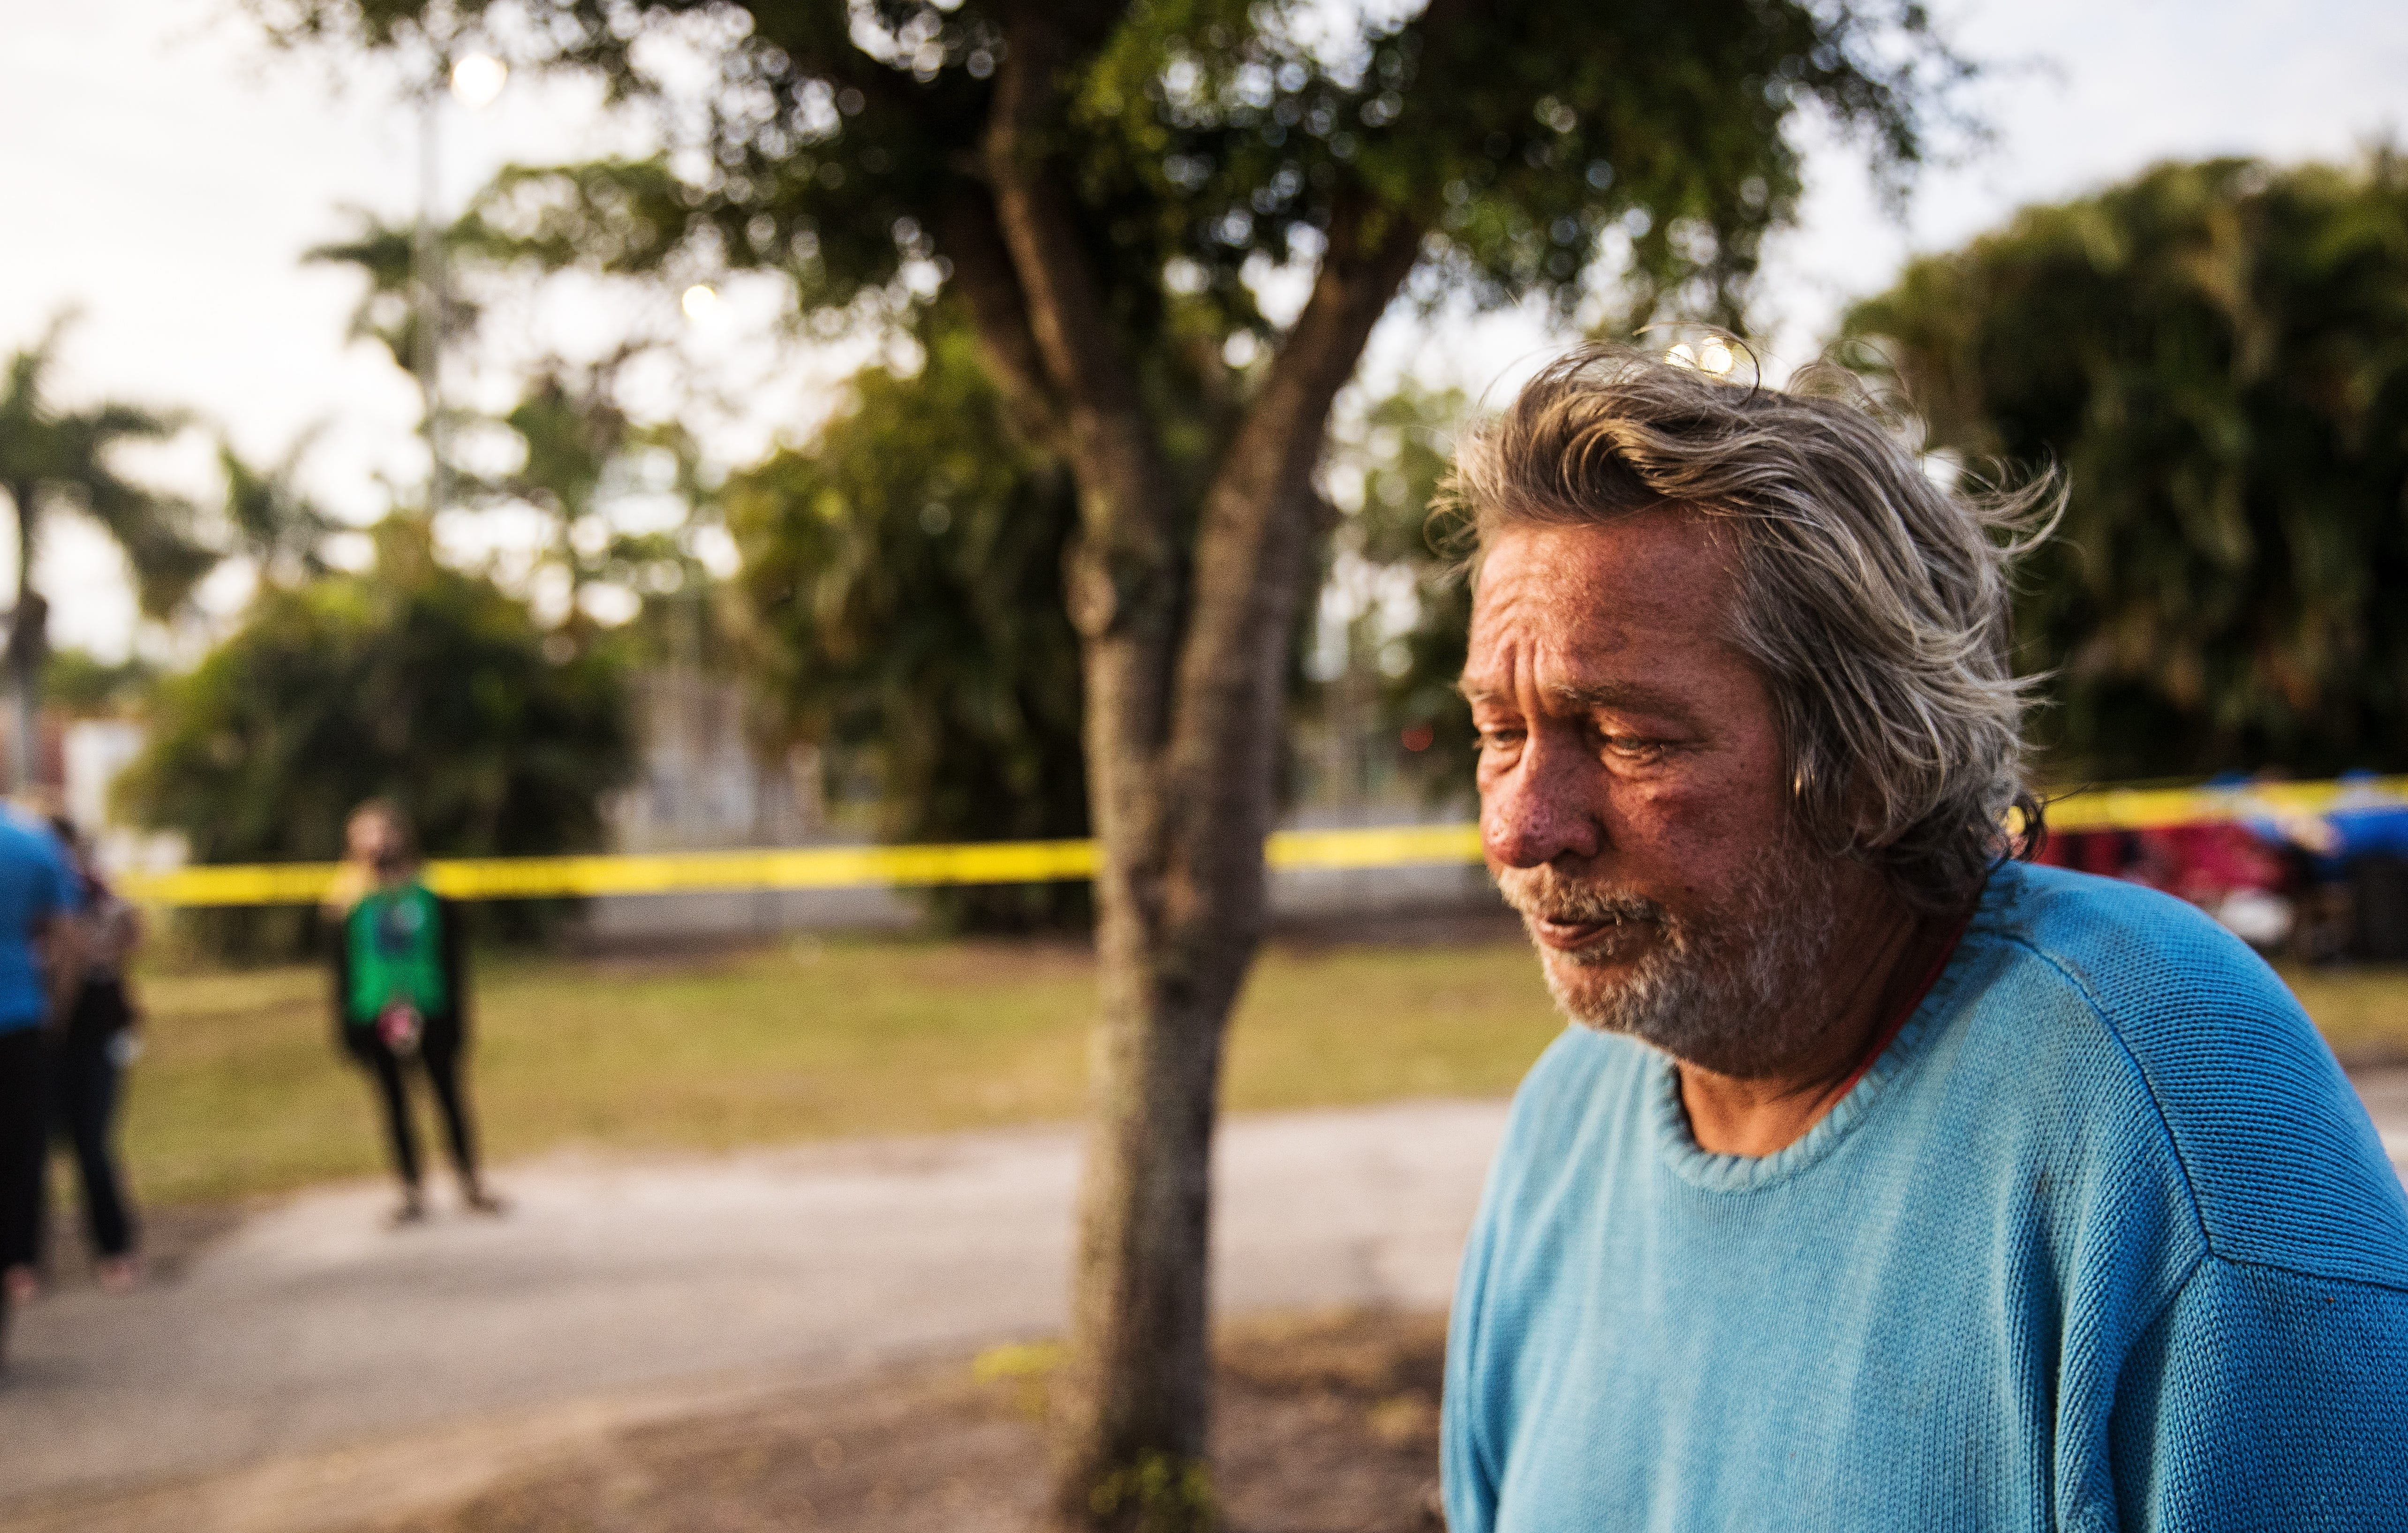 Fort Myers park cleared of overnight stays by homeless; 'We can't arrest our way out of this problem' 4